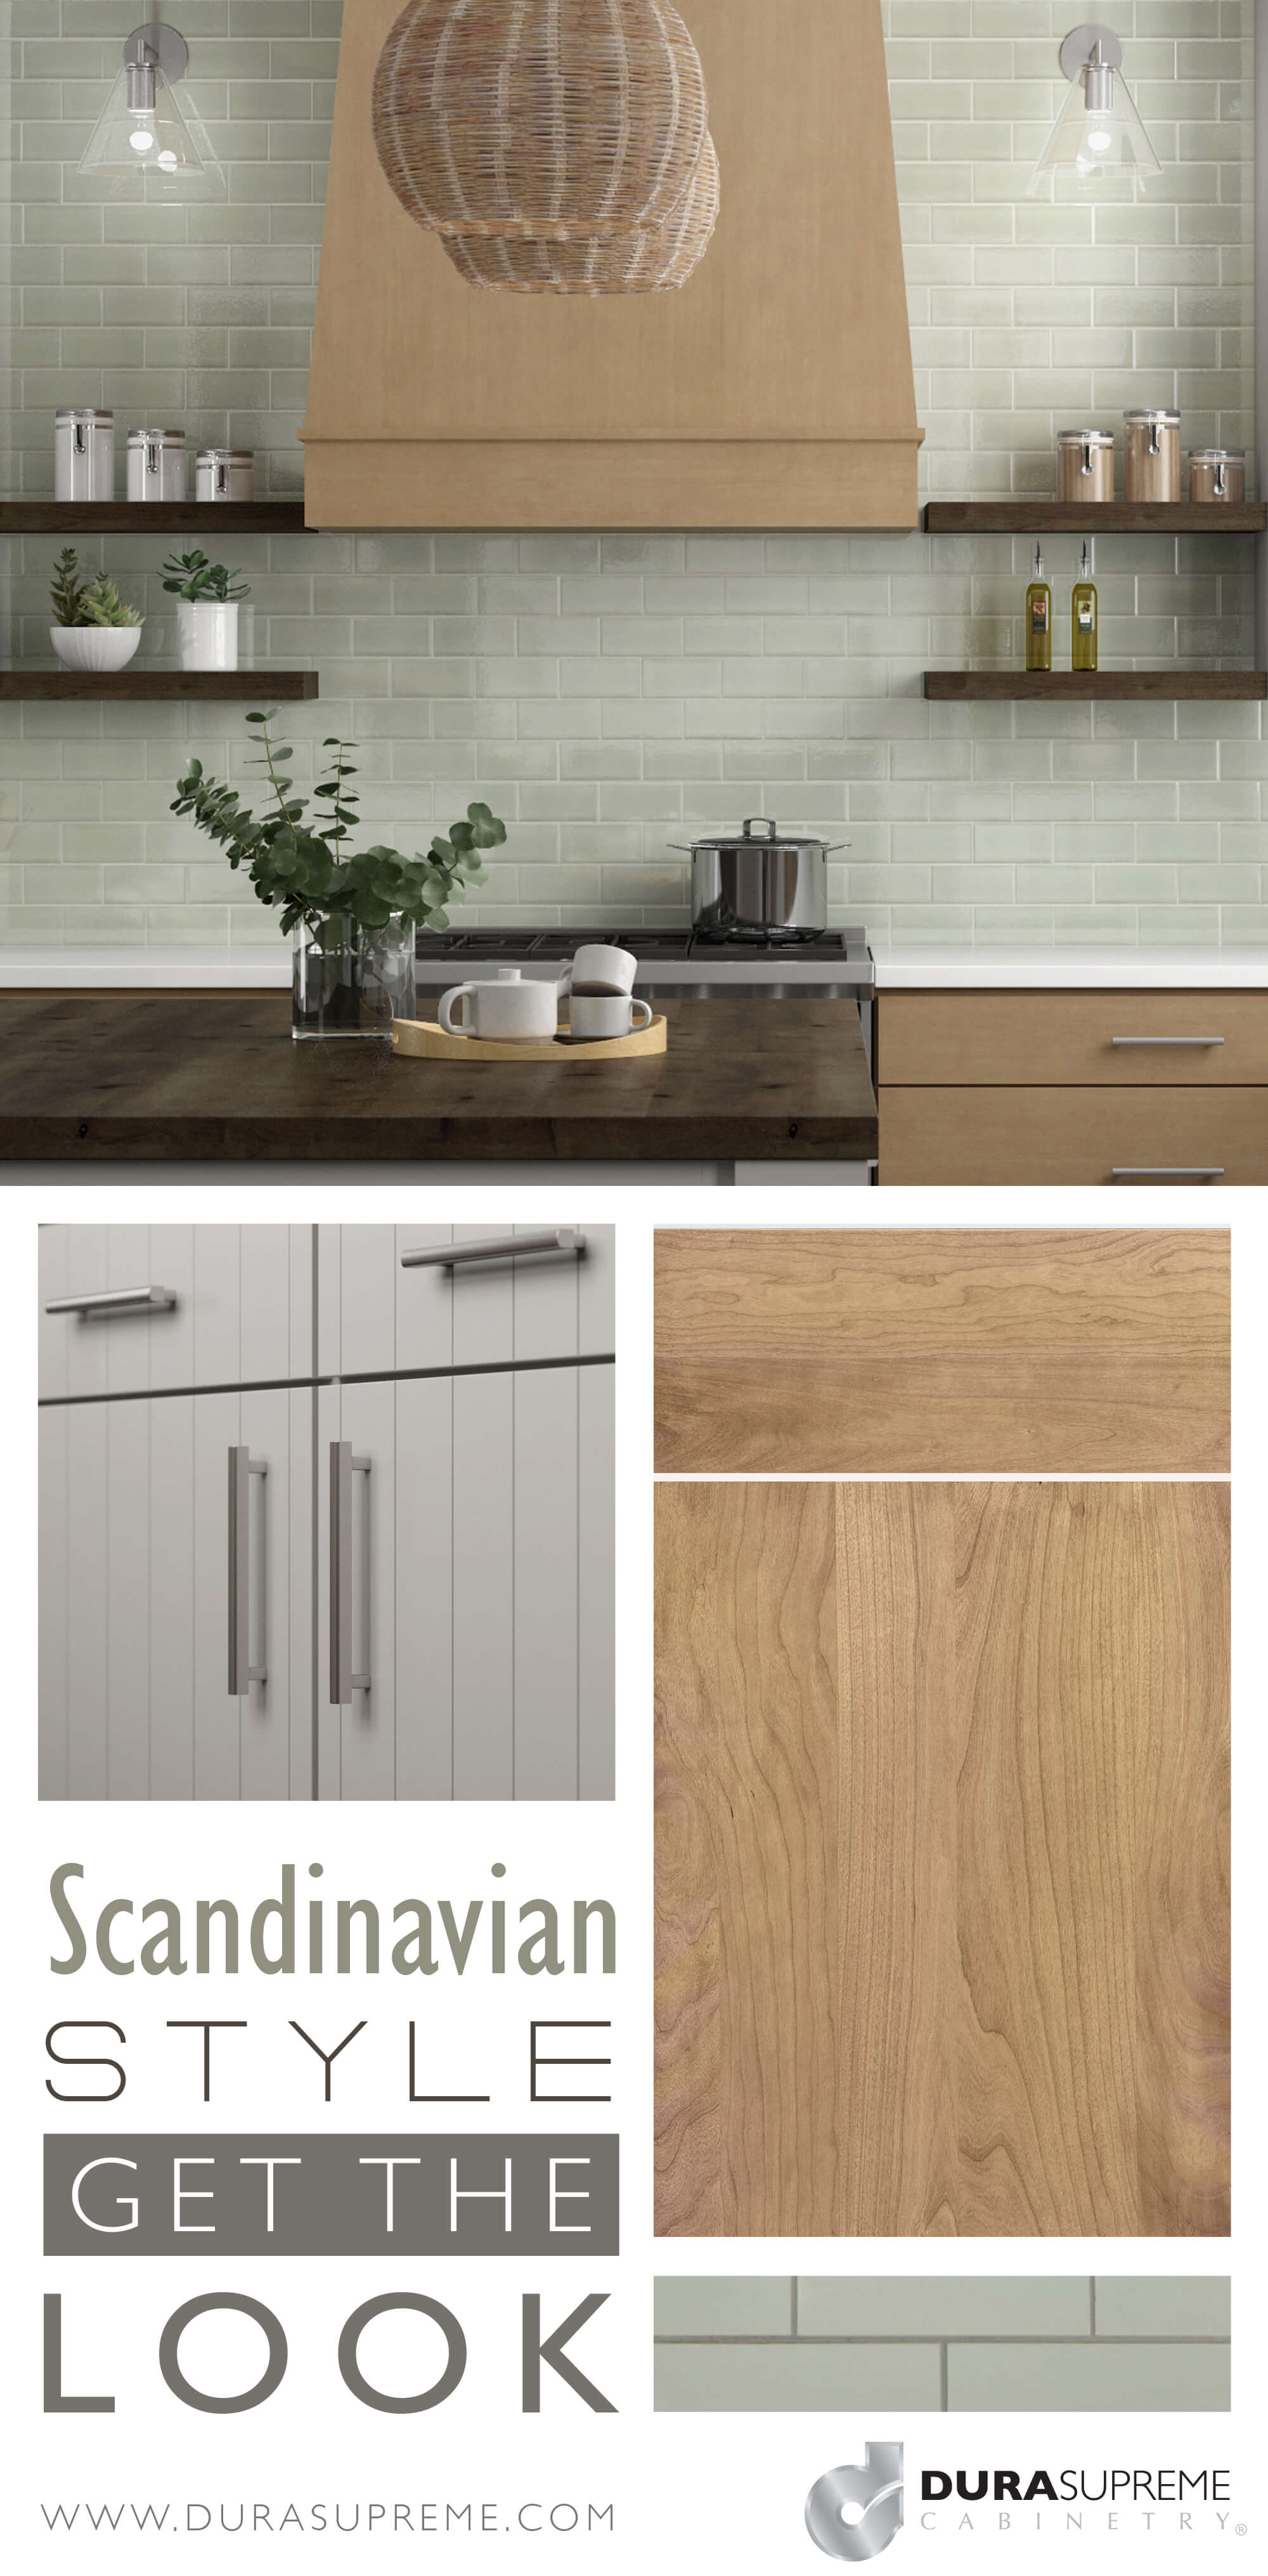 Get The Look Scandinavian Style Kitchen Design Dura Supreme Cabinetry